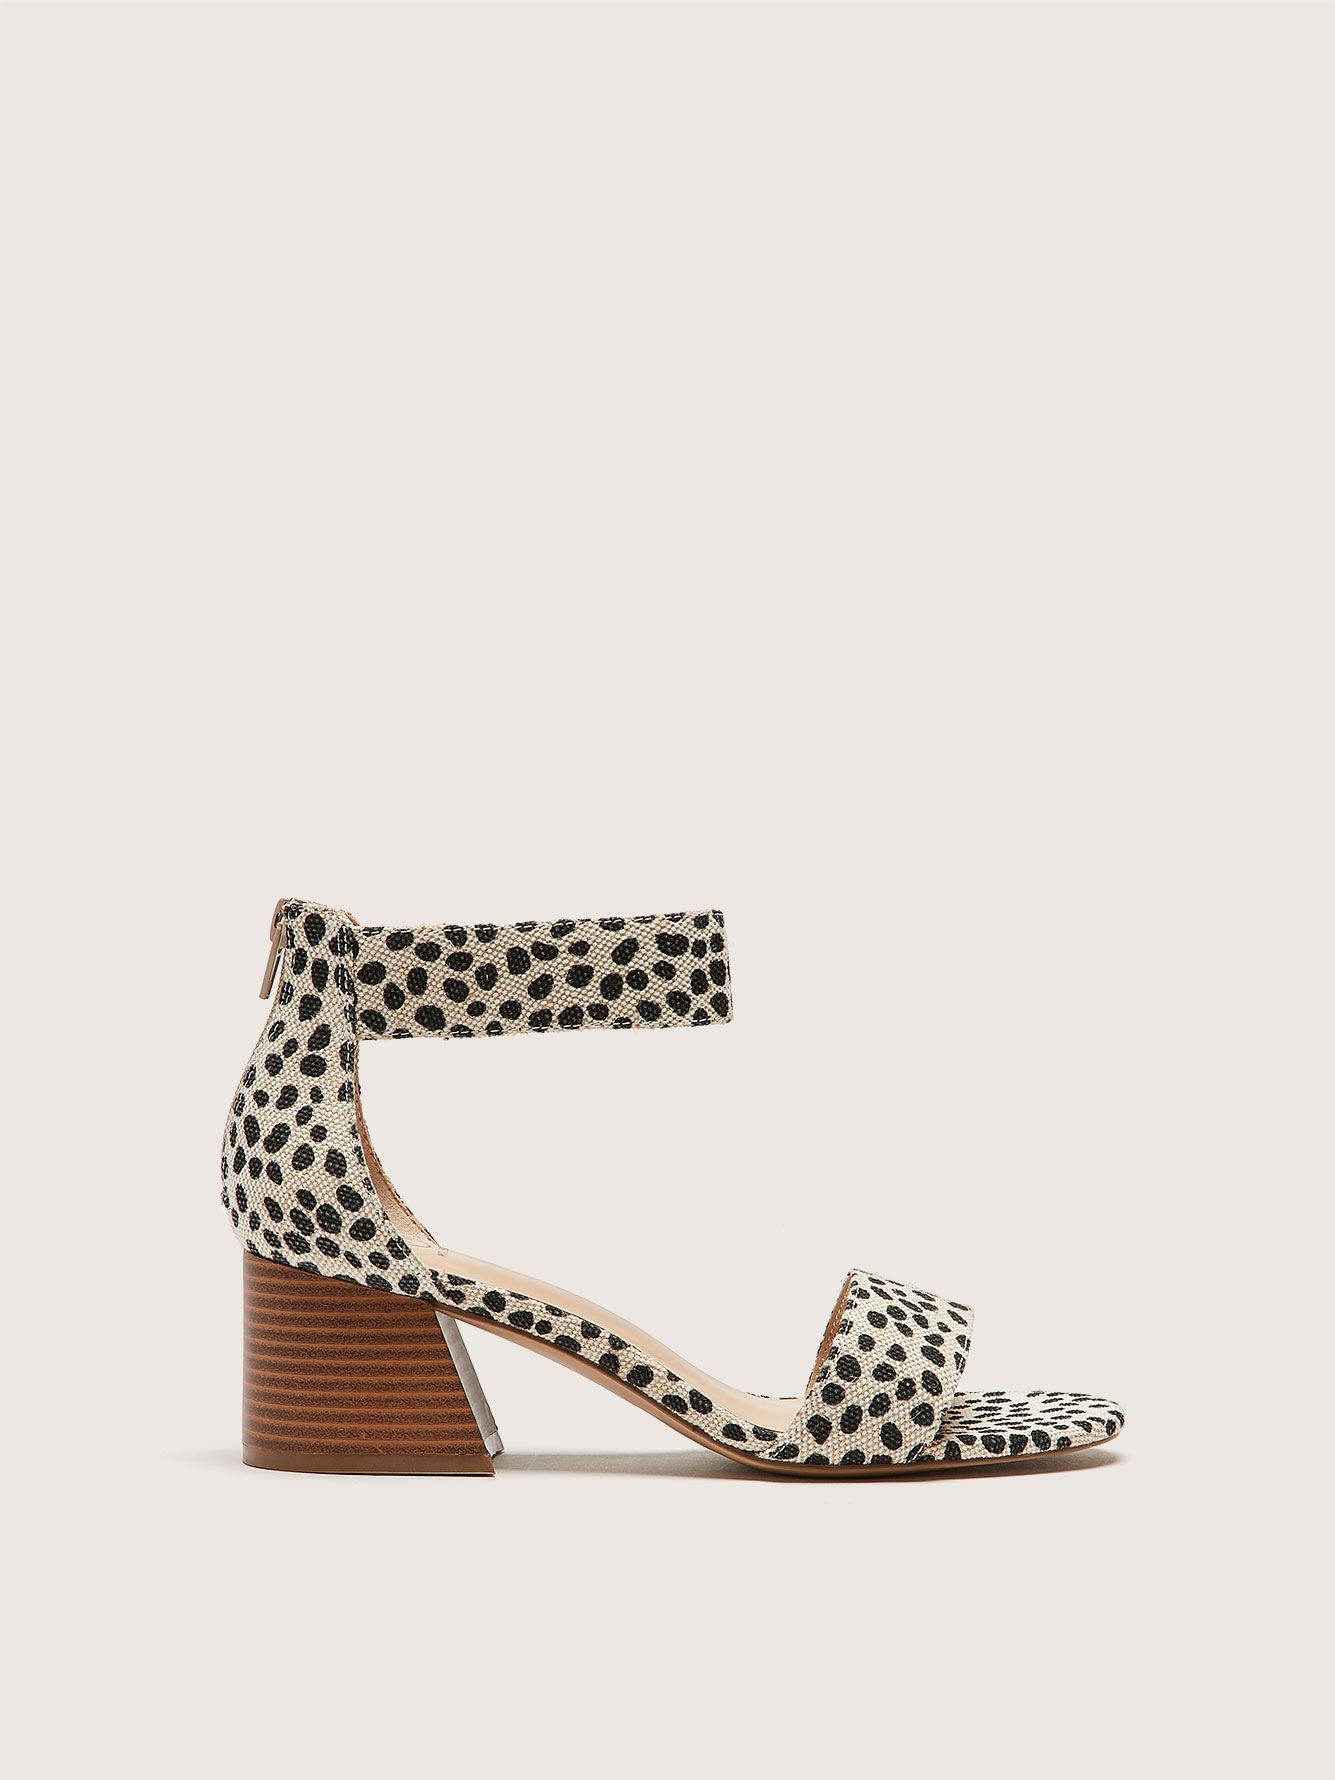 Wide Ankle Strap Cheetah Print Sandal - Addition Elle